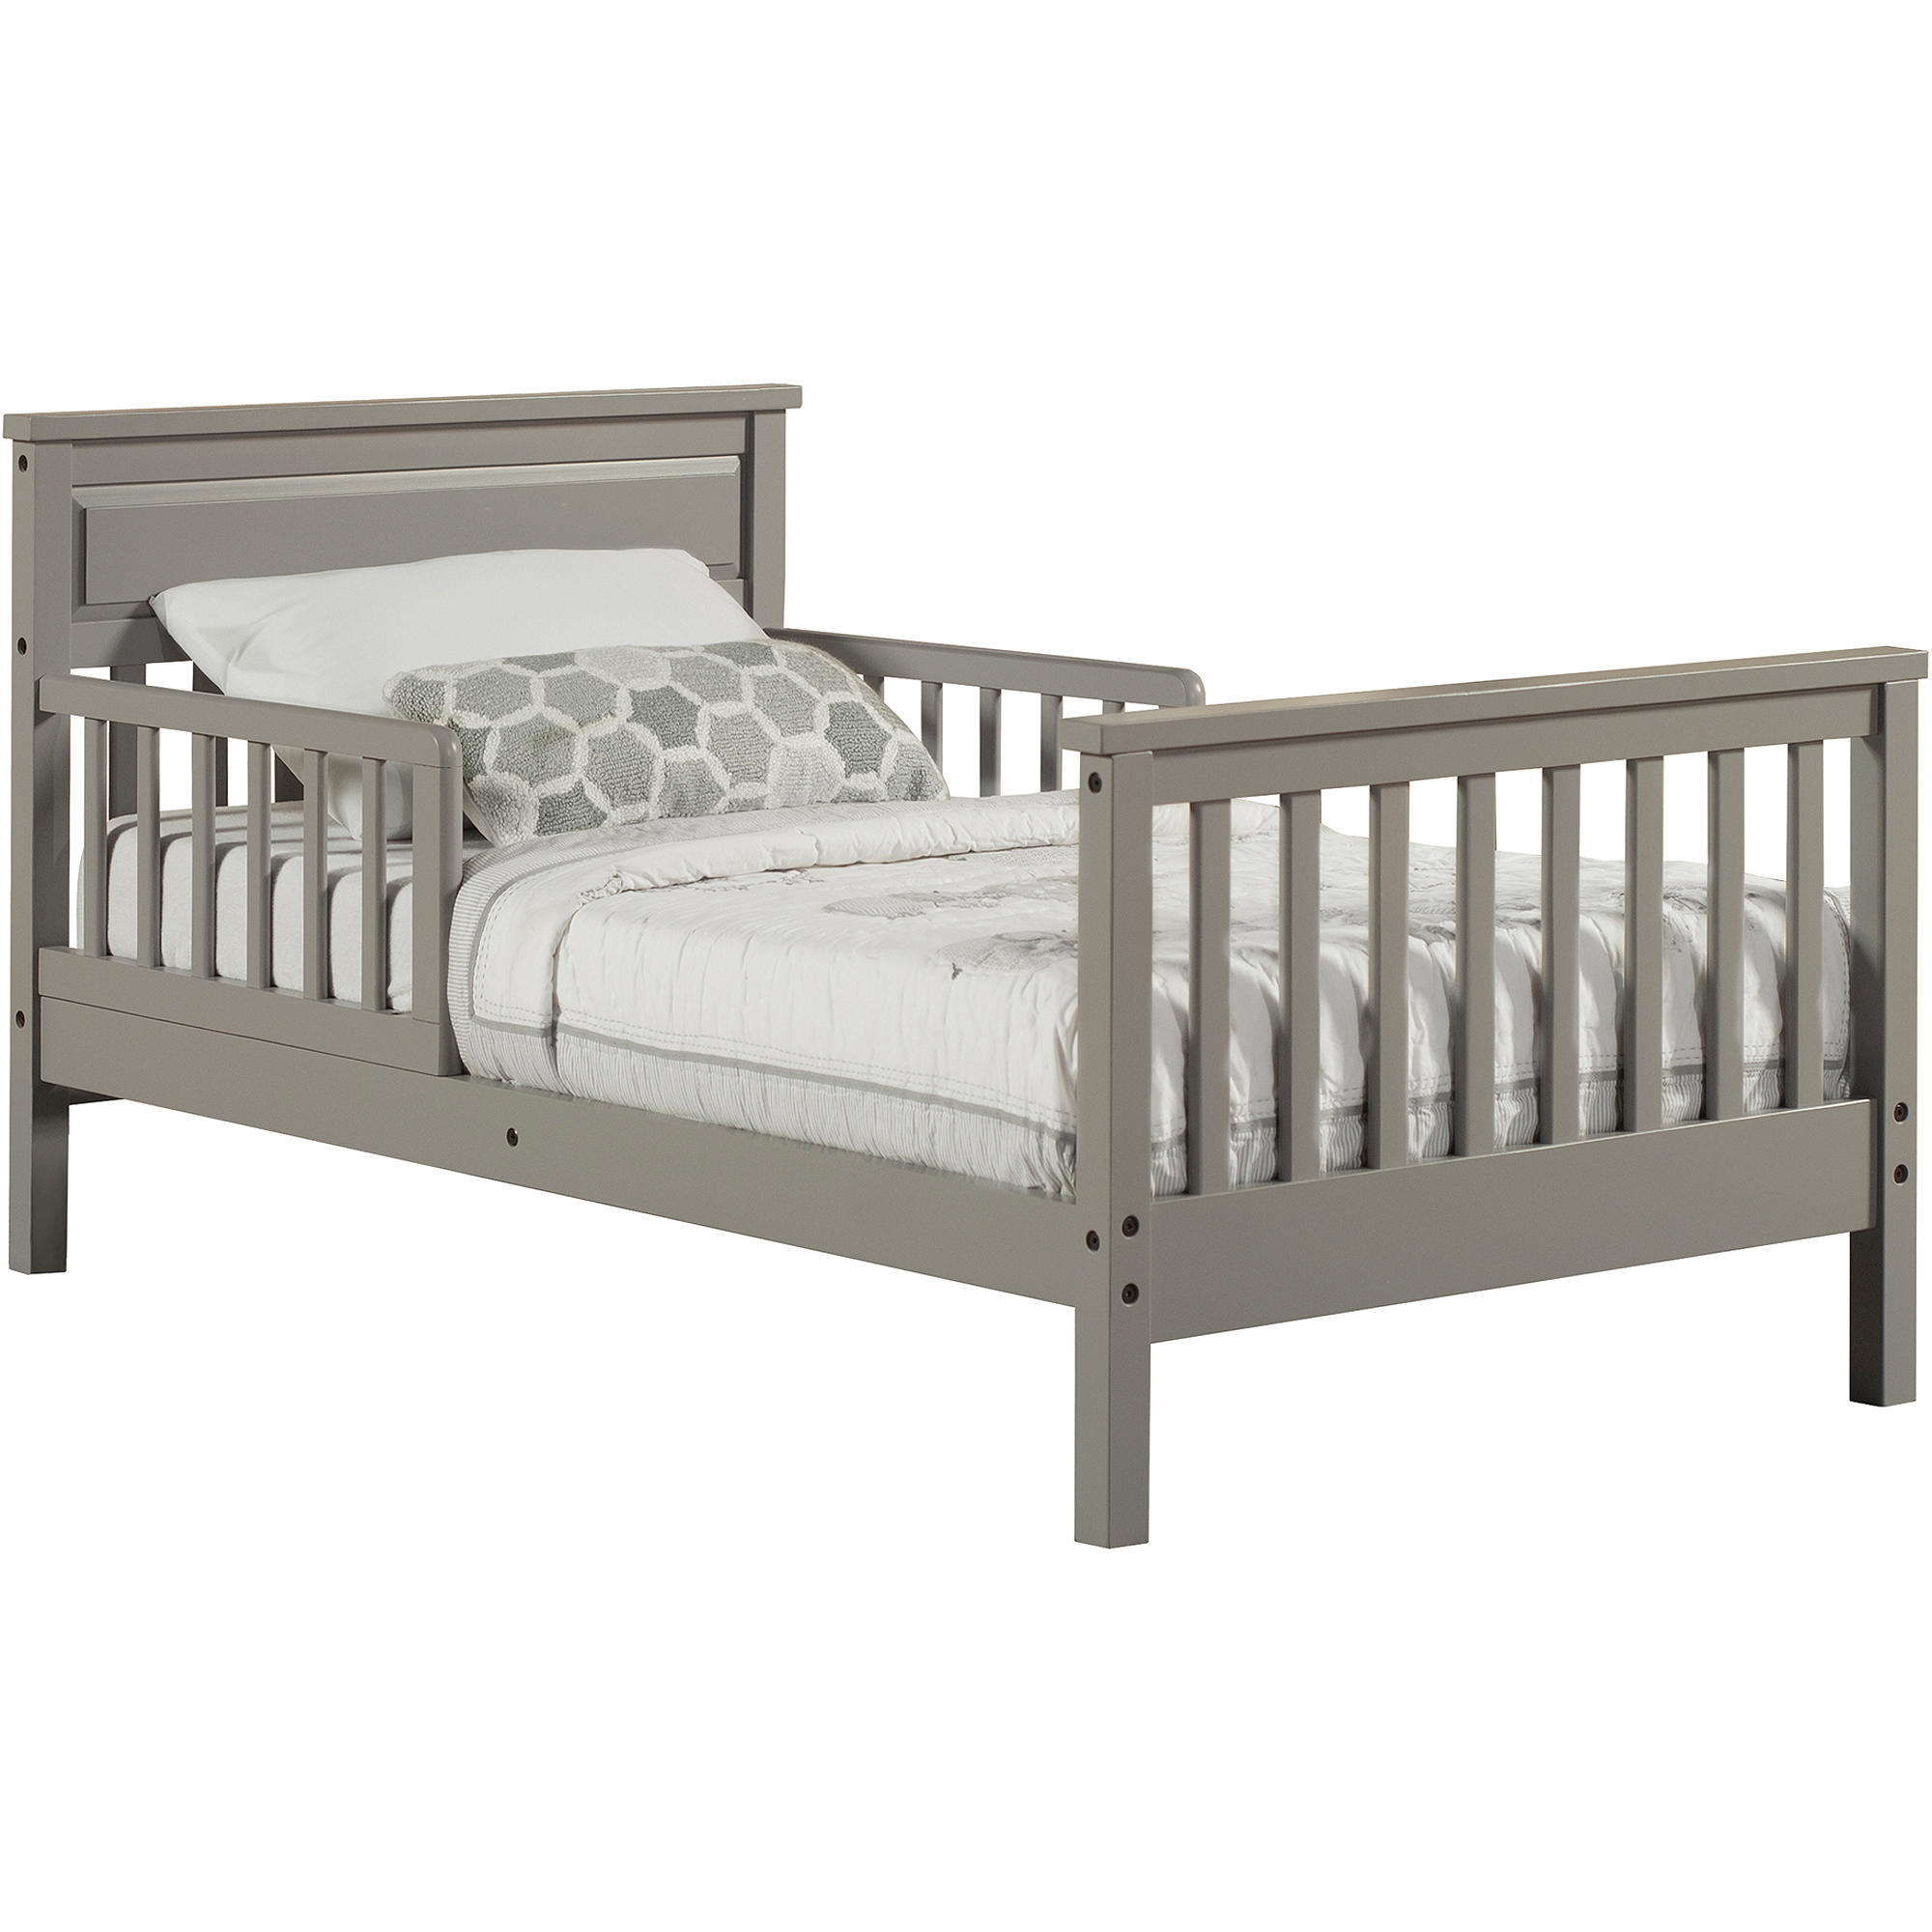 Baby Relax Haven Toddler Bed, Gray